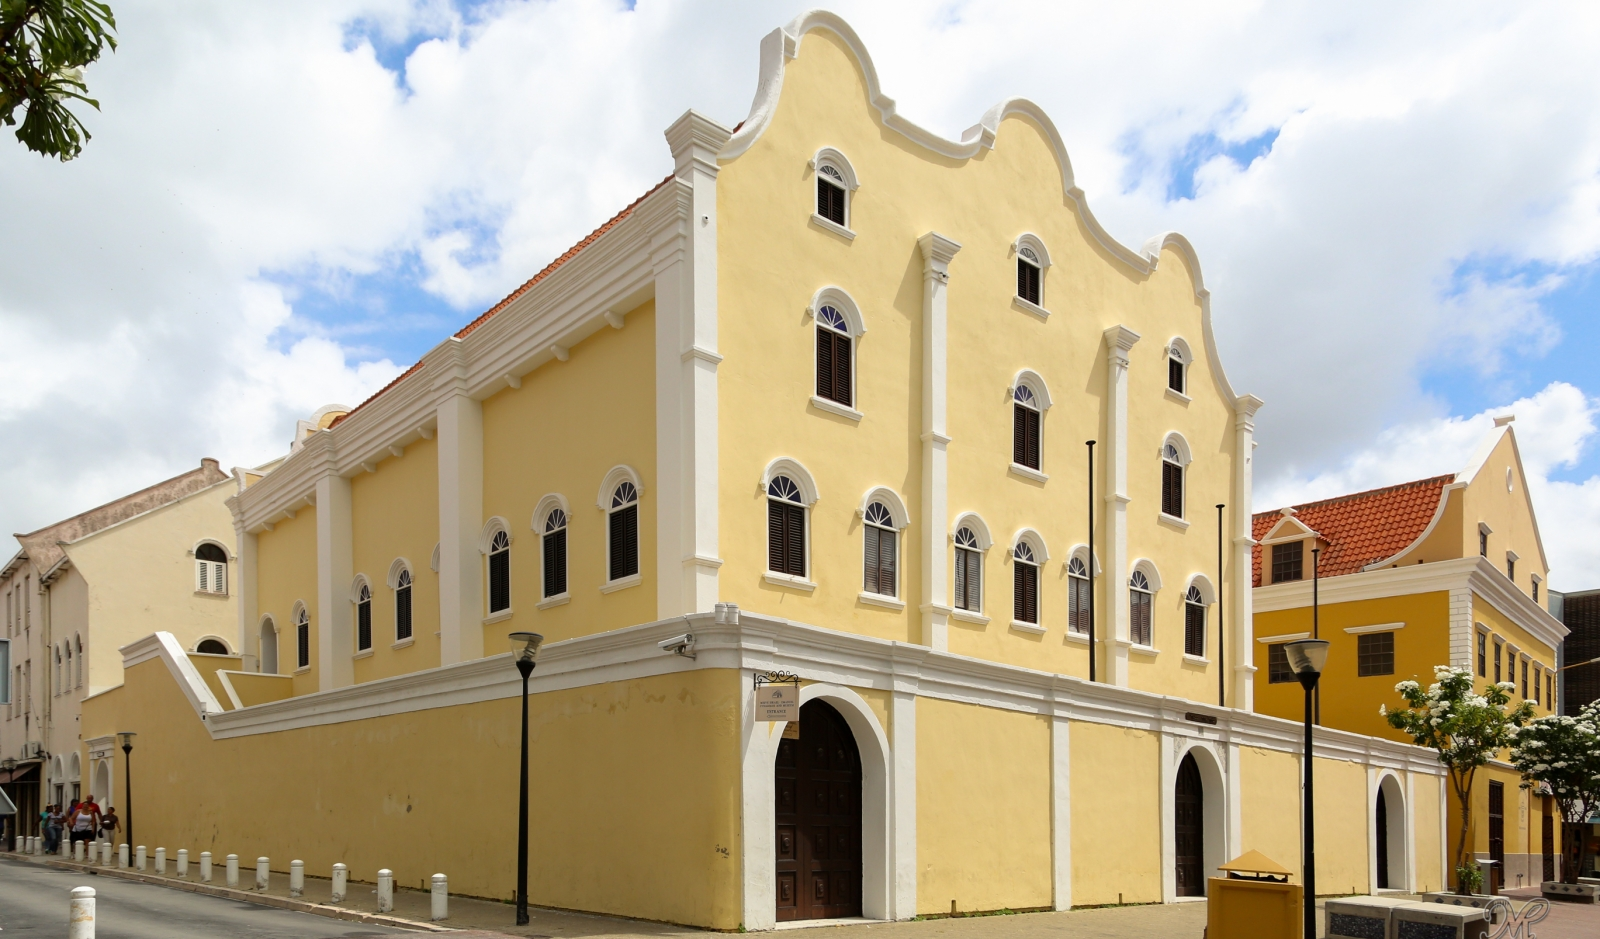 Mikve Israel Emanual Synagogue in Willemstad Curacao